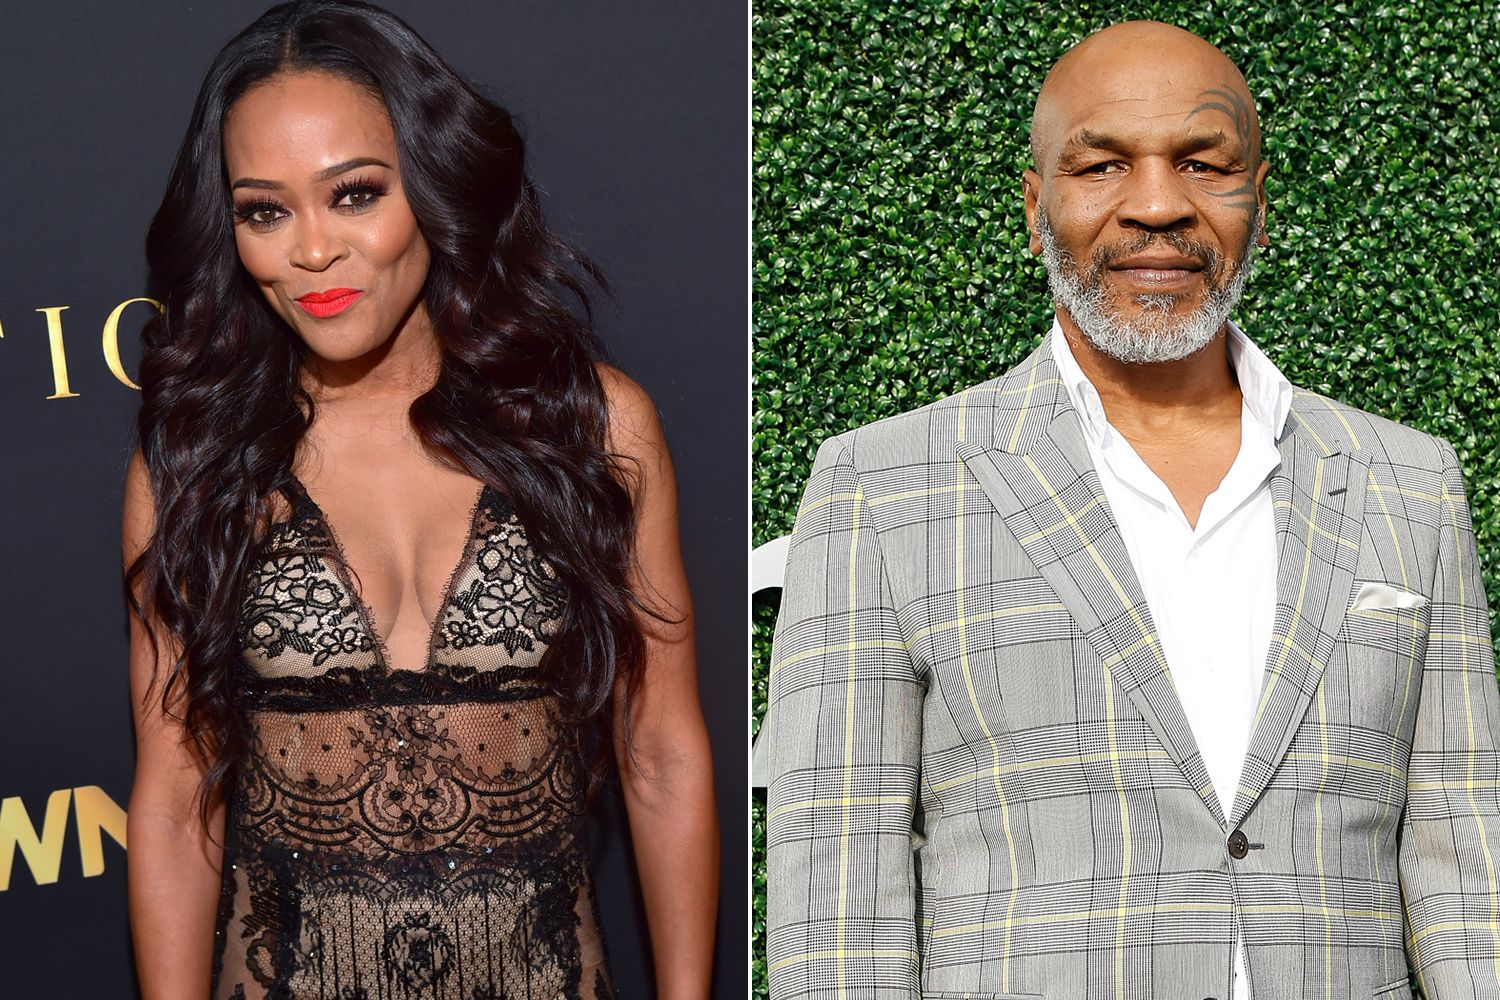 Robin Givens Head of the Class Star Has a Biracial Son with Murphy Jensen The Tennis Champ!